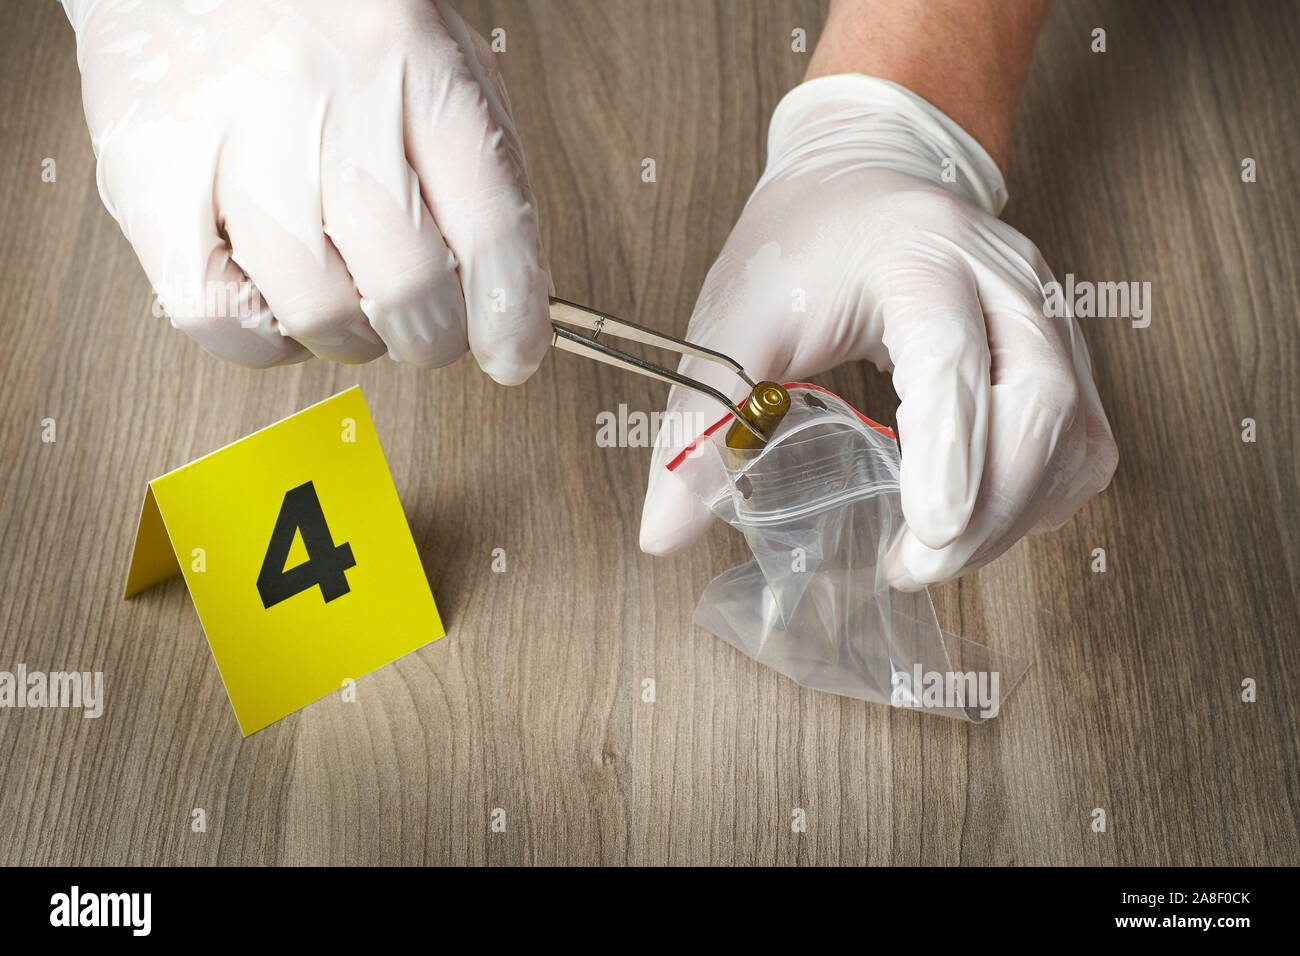 Crime Scene Investigation Forensic Officer Collecting A Bullet Casing As A Piece Of Evidence Stock Photo Alamy